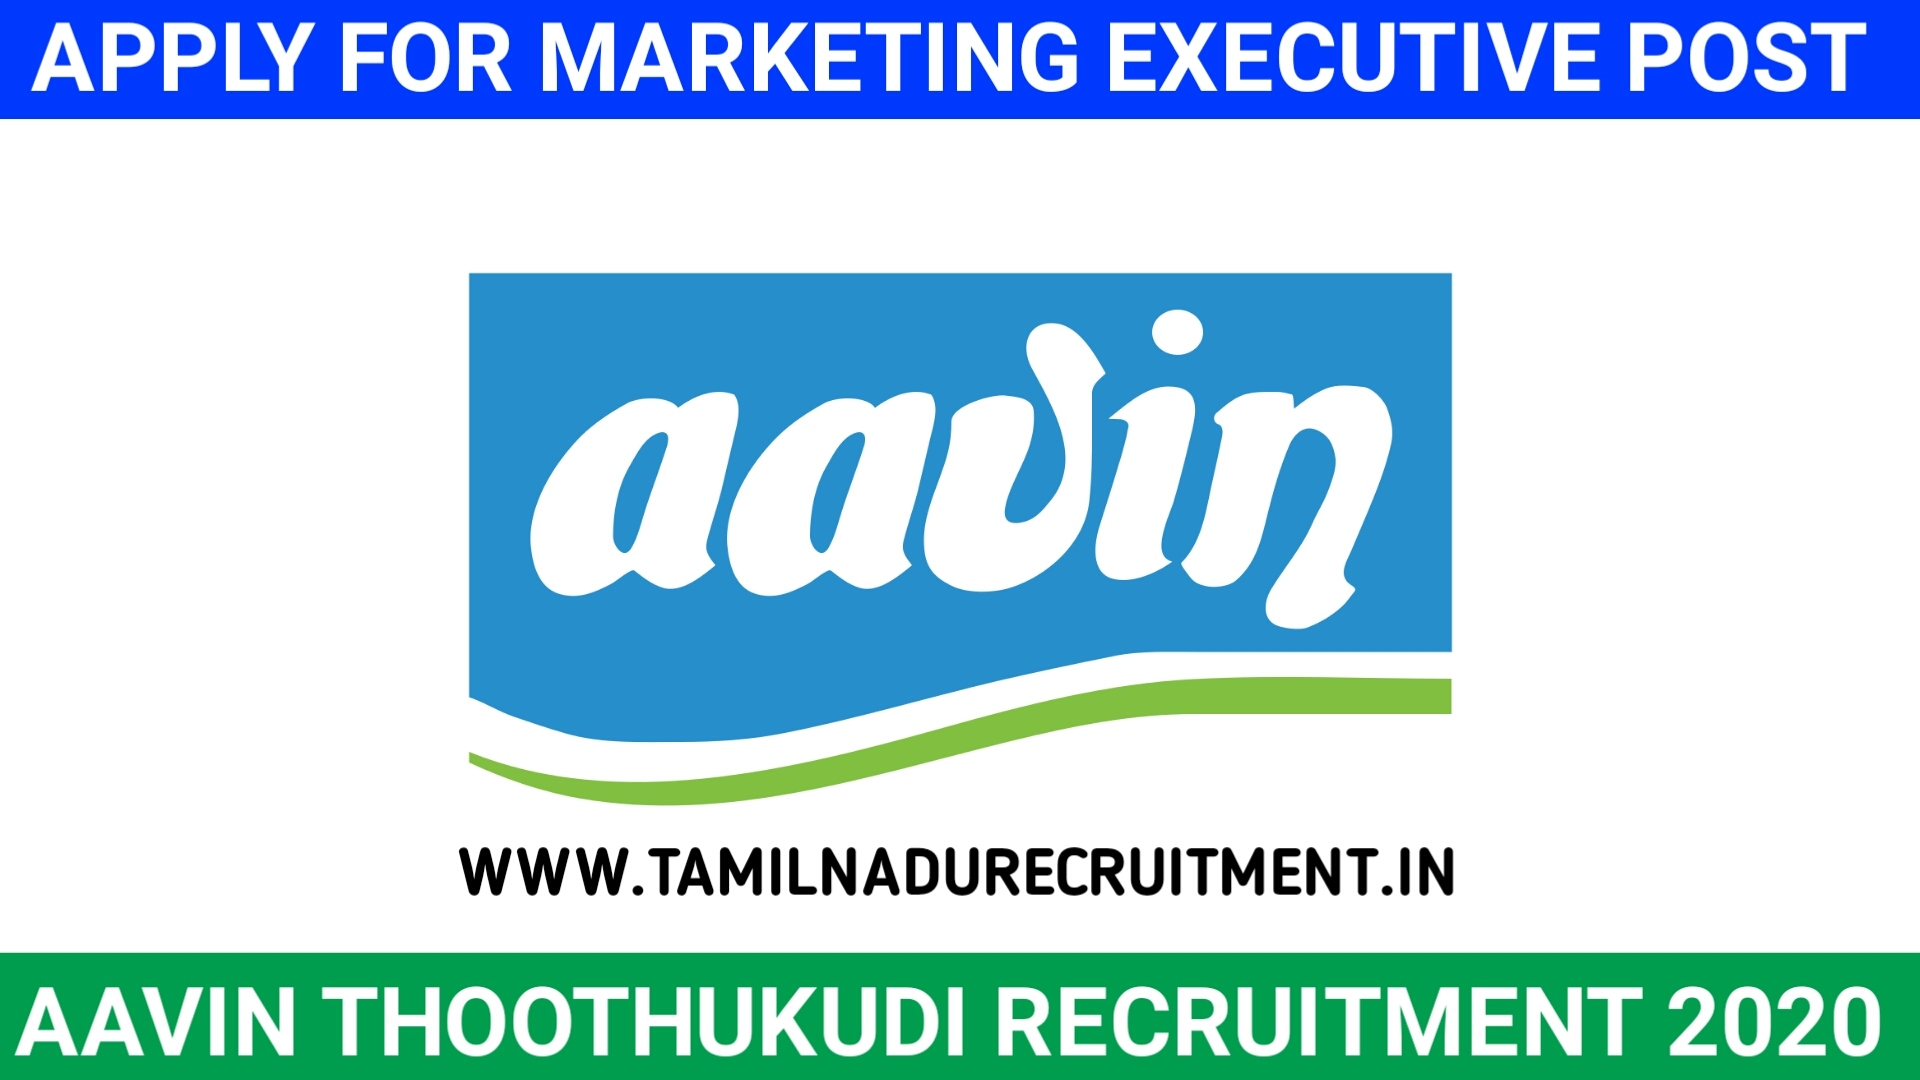 Photo of Aavin Thoothukudi Cooperative recruitment 2020 – Apply Now for 08 Marketing Executive posts